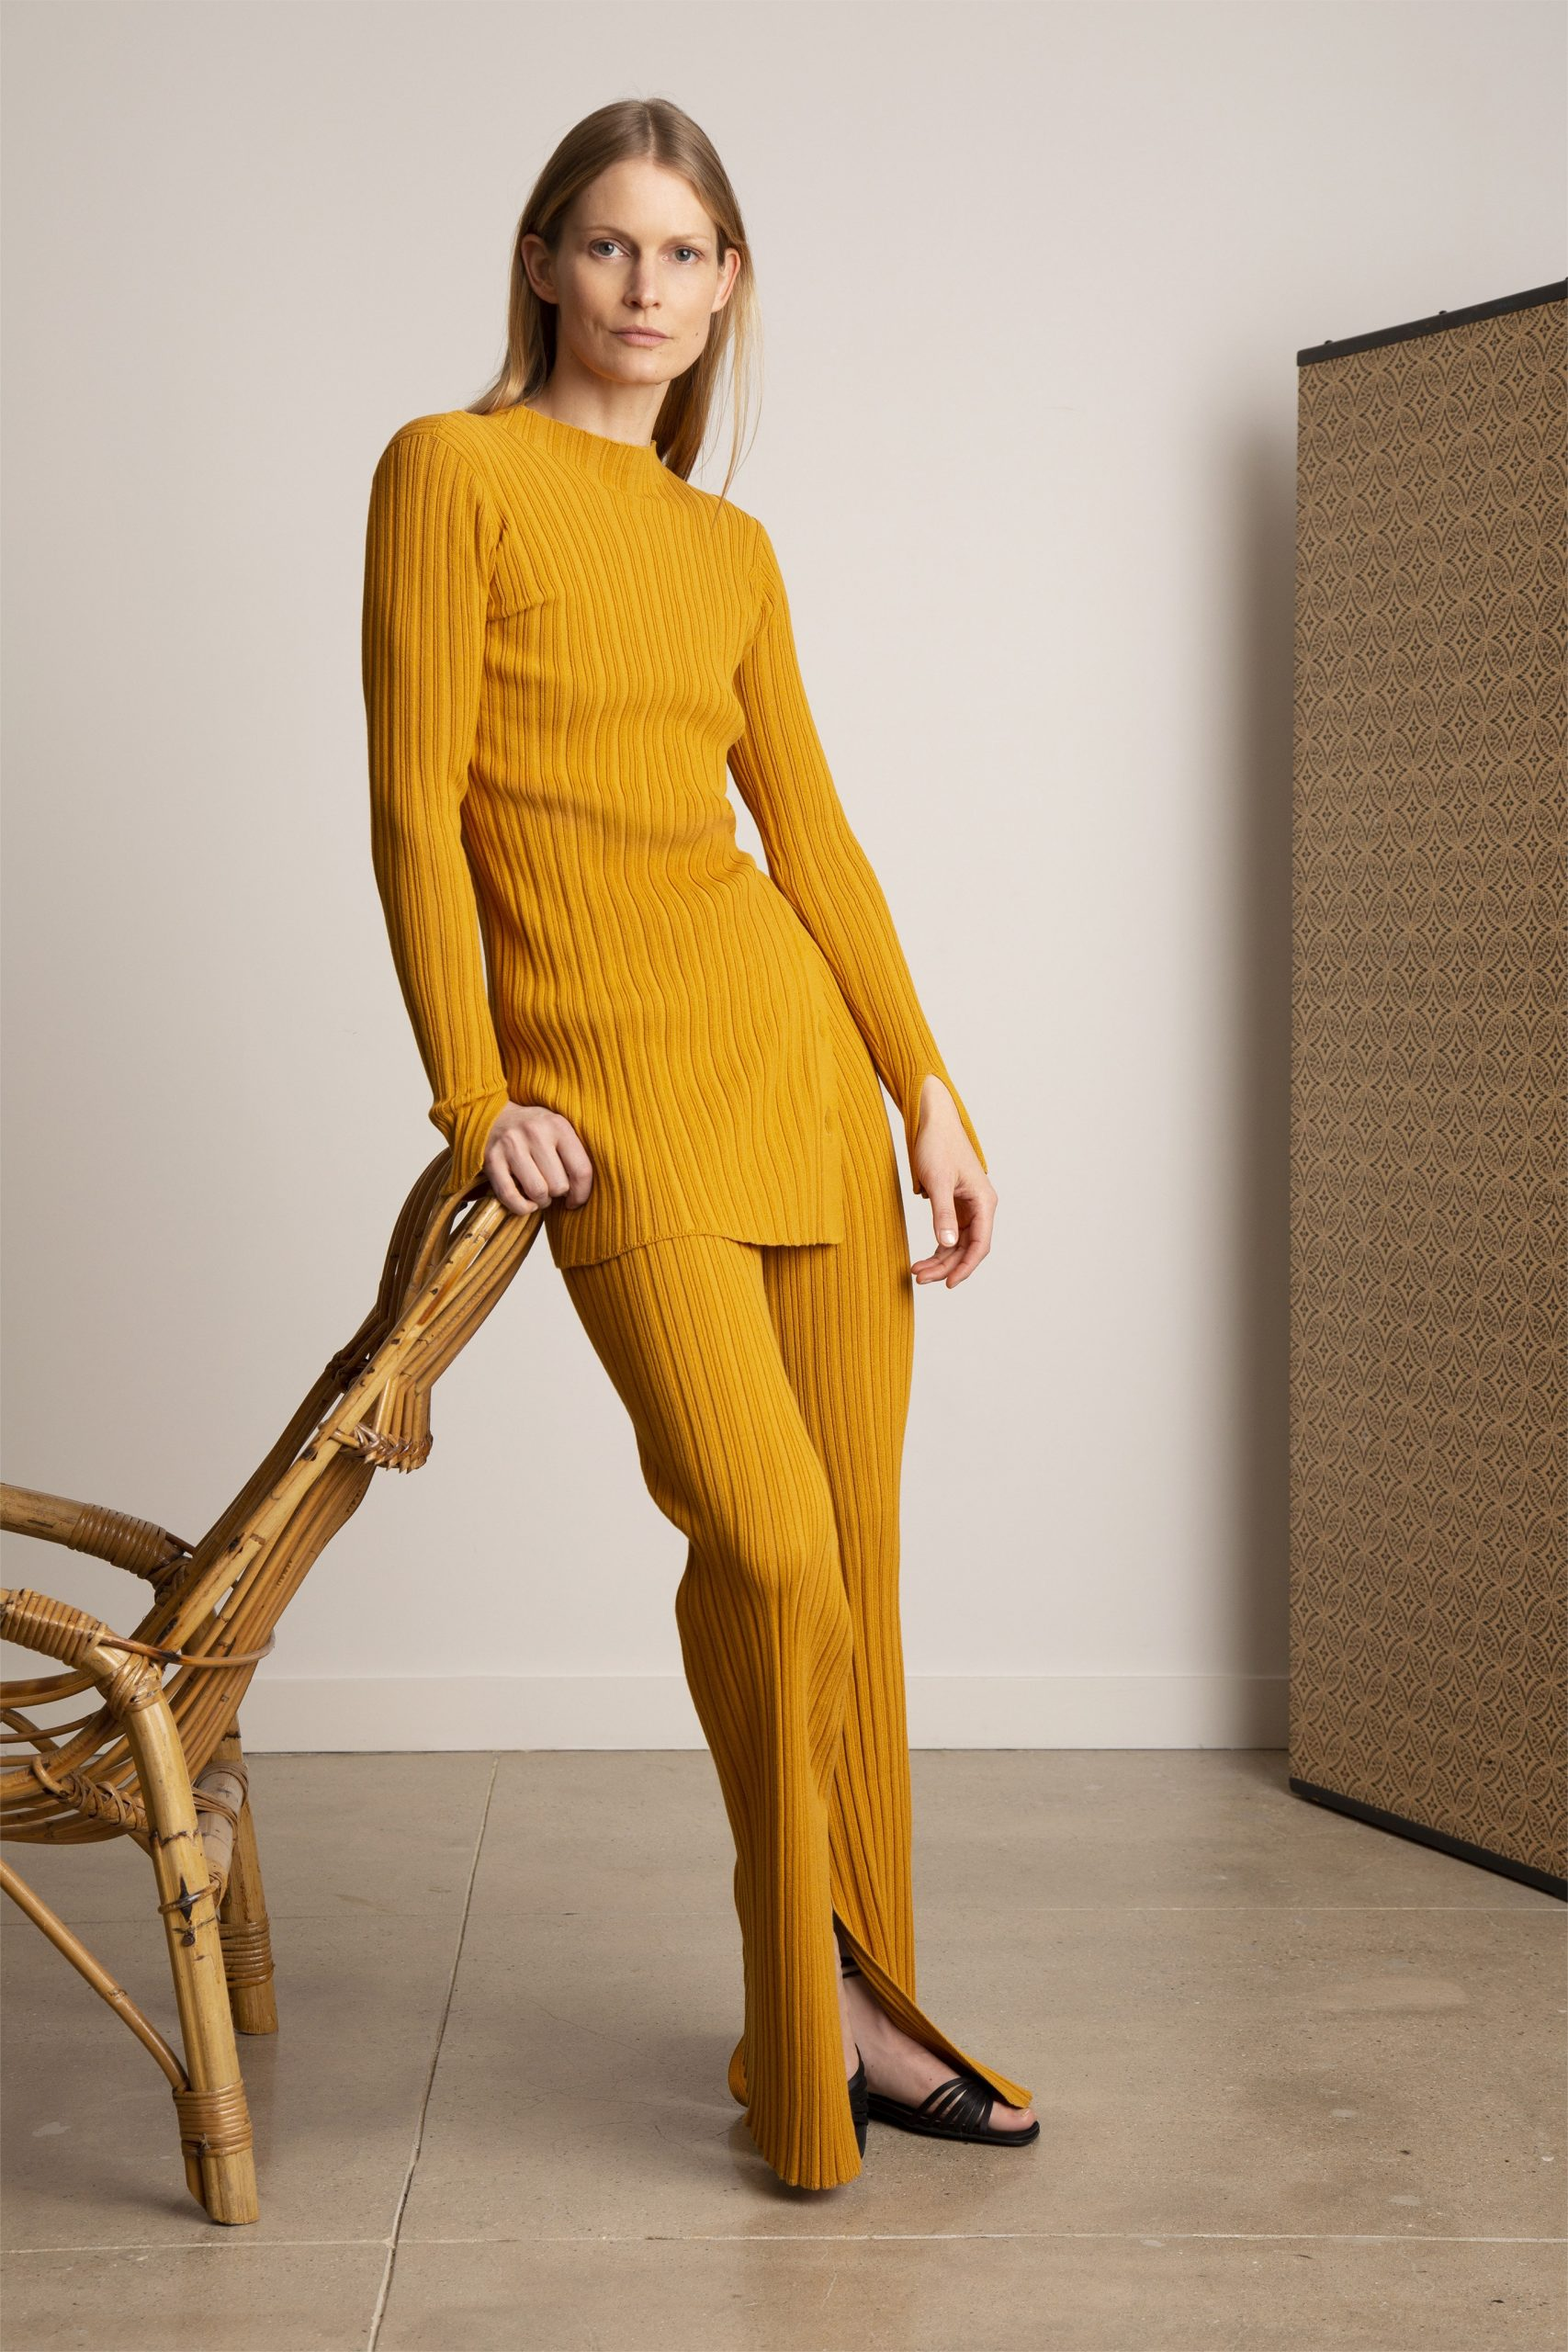 Adam Lippes Pre-Fall 2021 Fashion Collection Photos